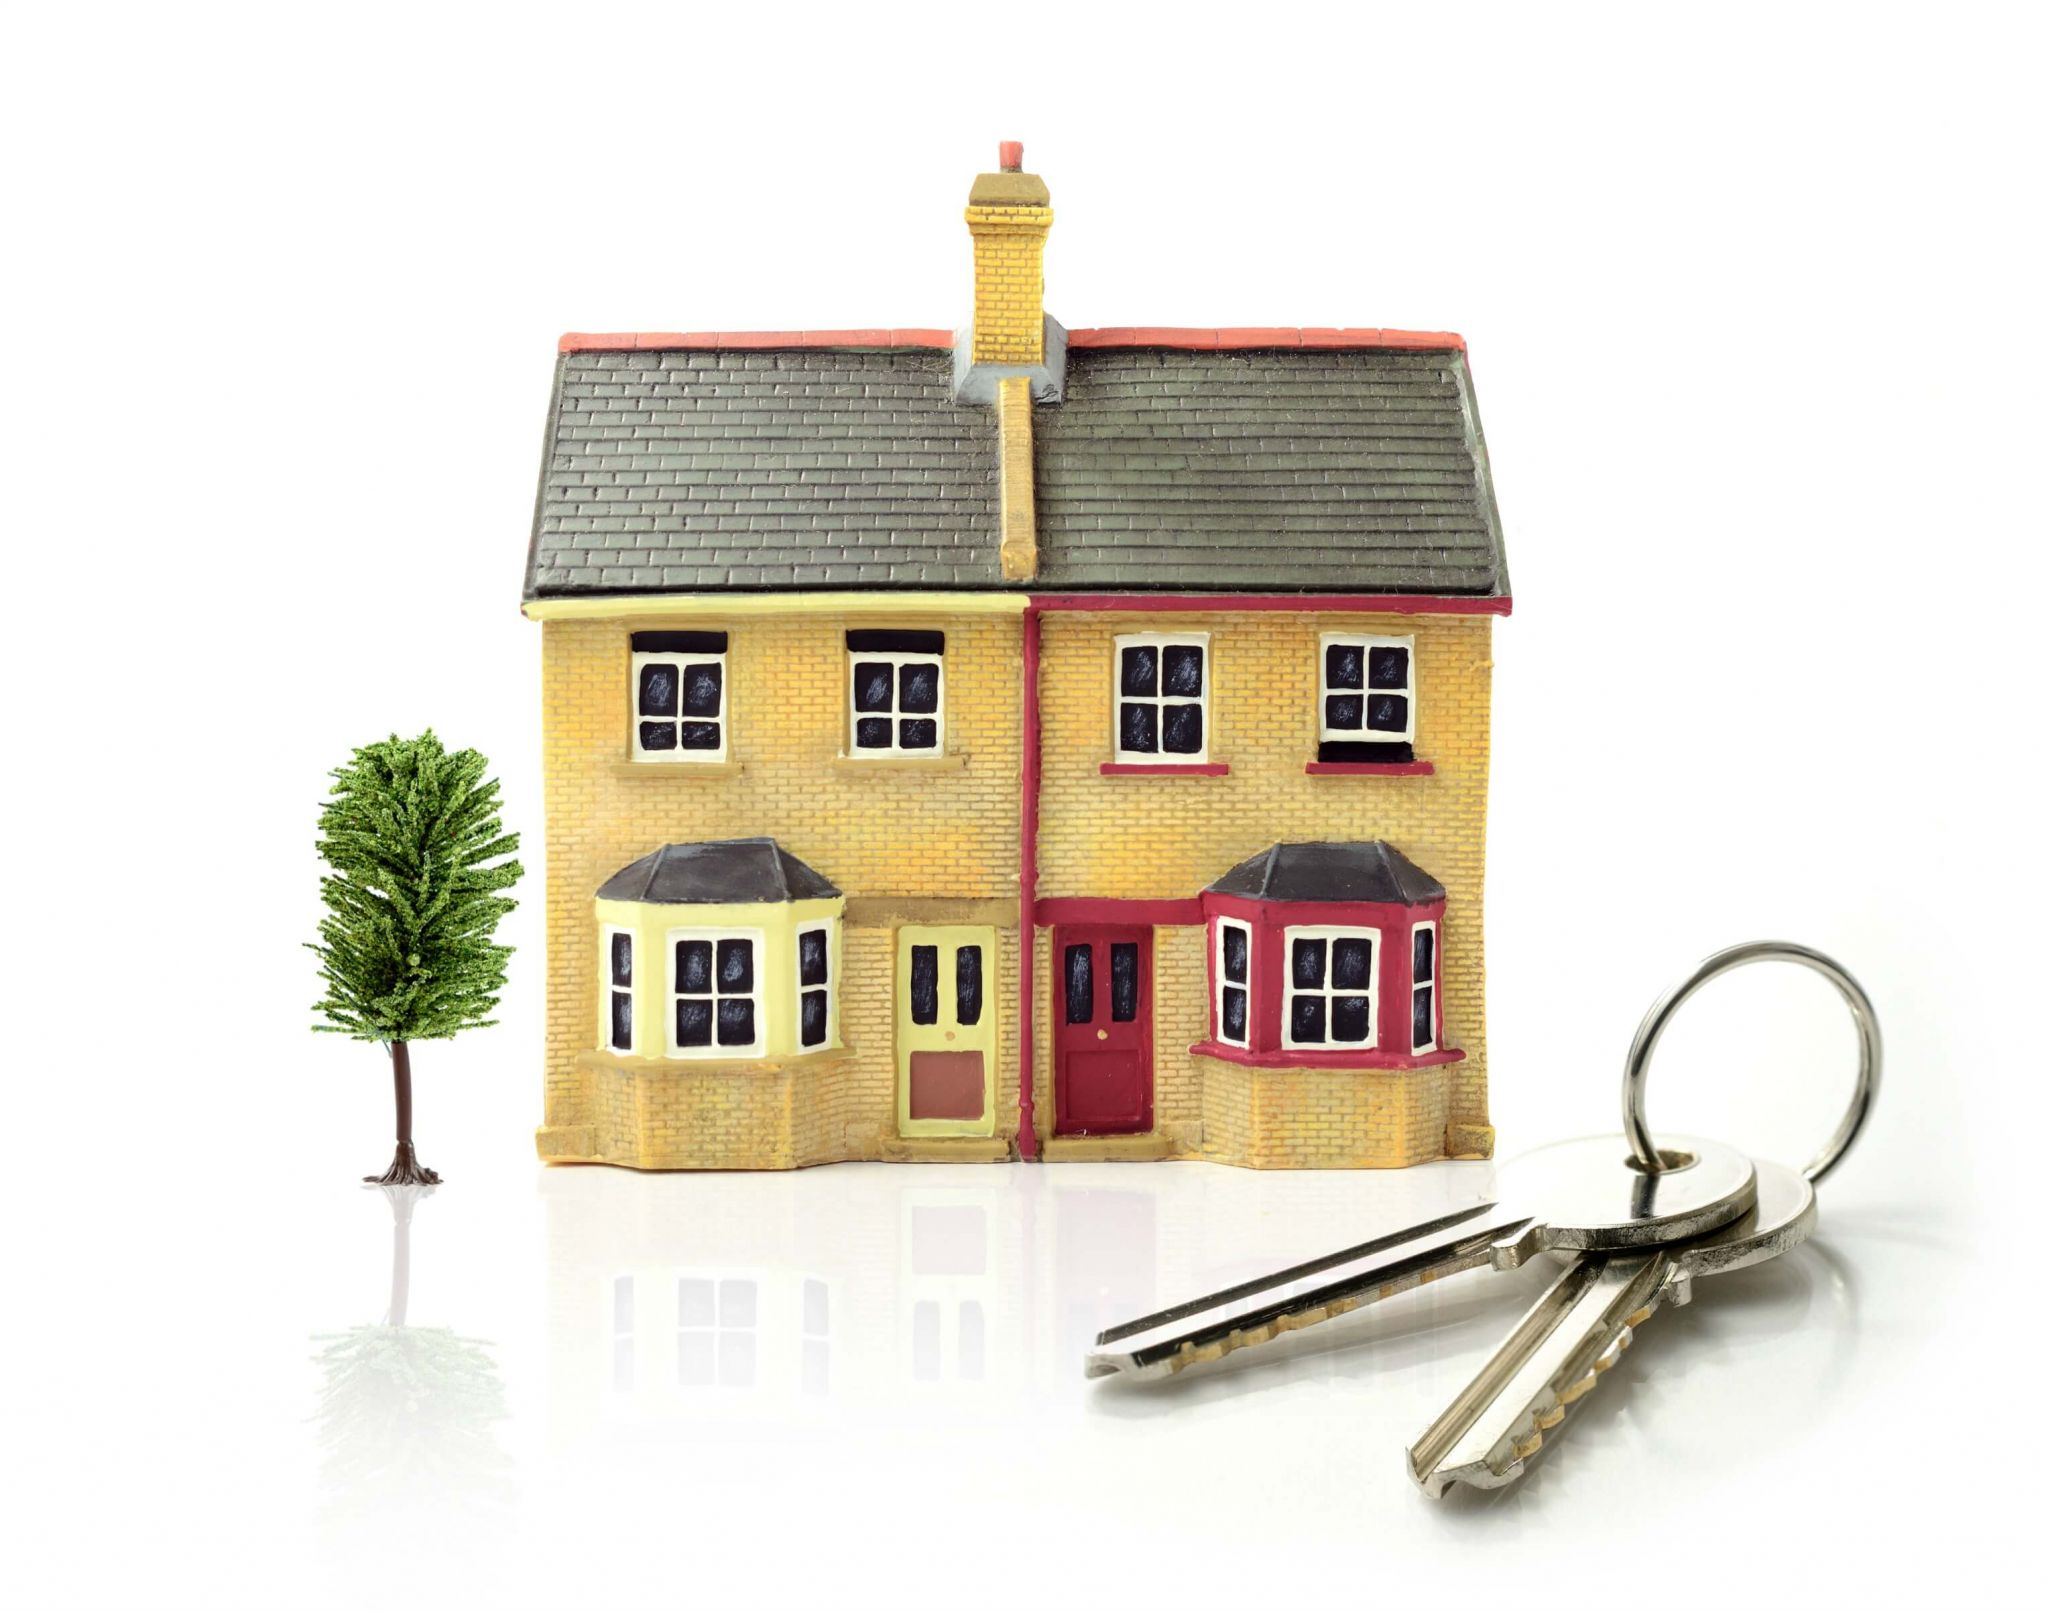 help to buy - toy house with mini tree and house keys